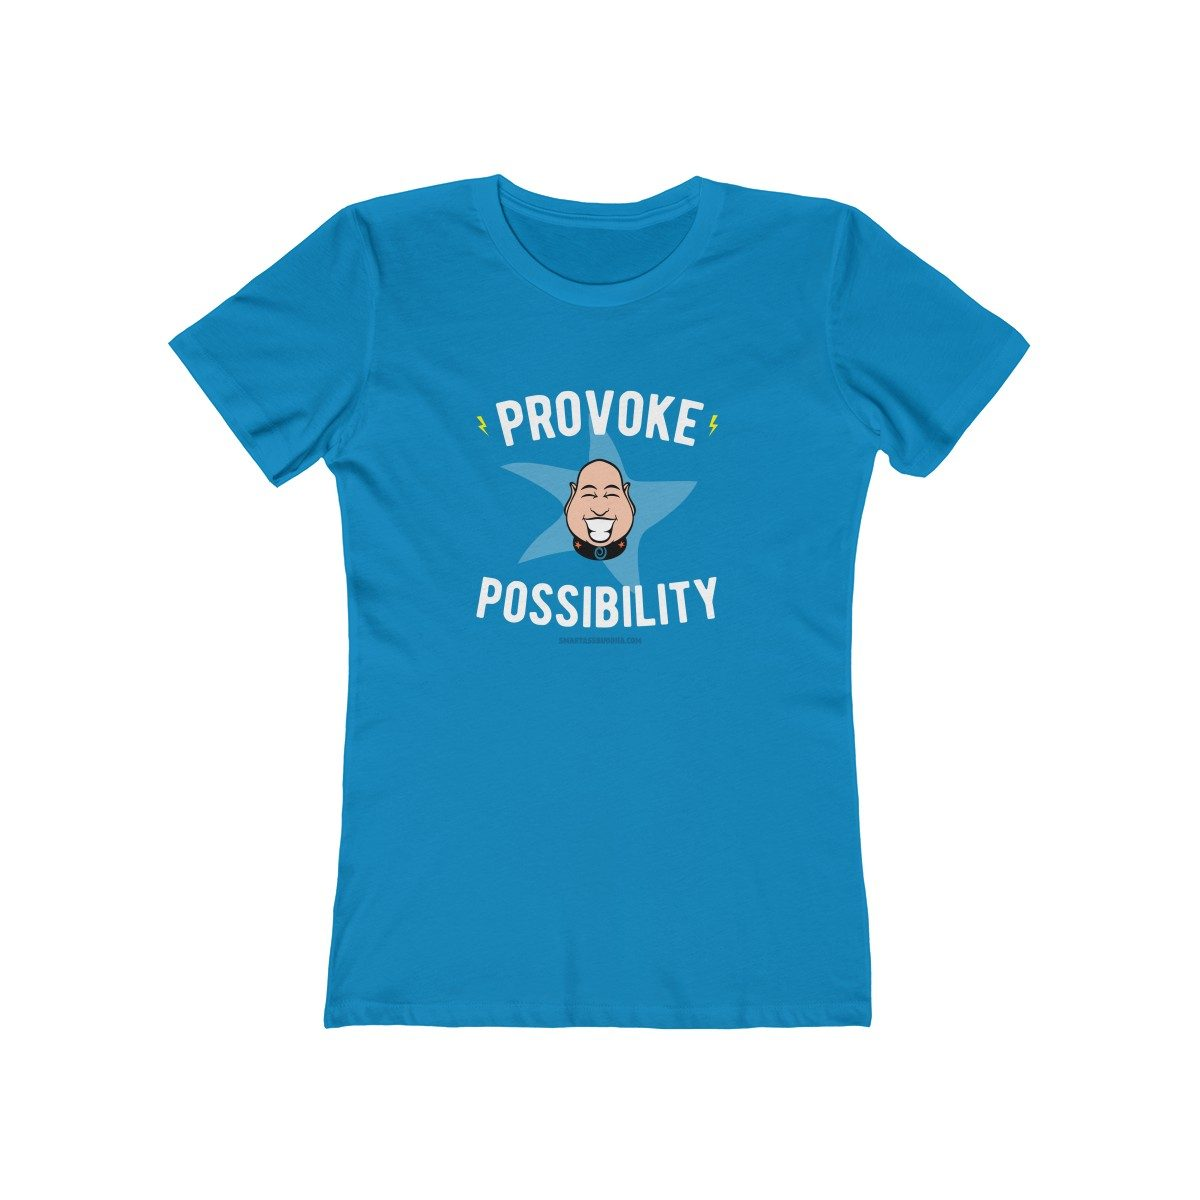 provoke-possibility-empower-tshirts-with-sayings-for-women-cool-gift-blue